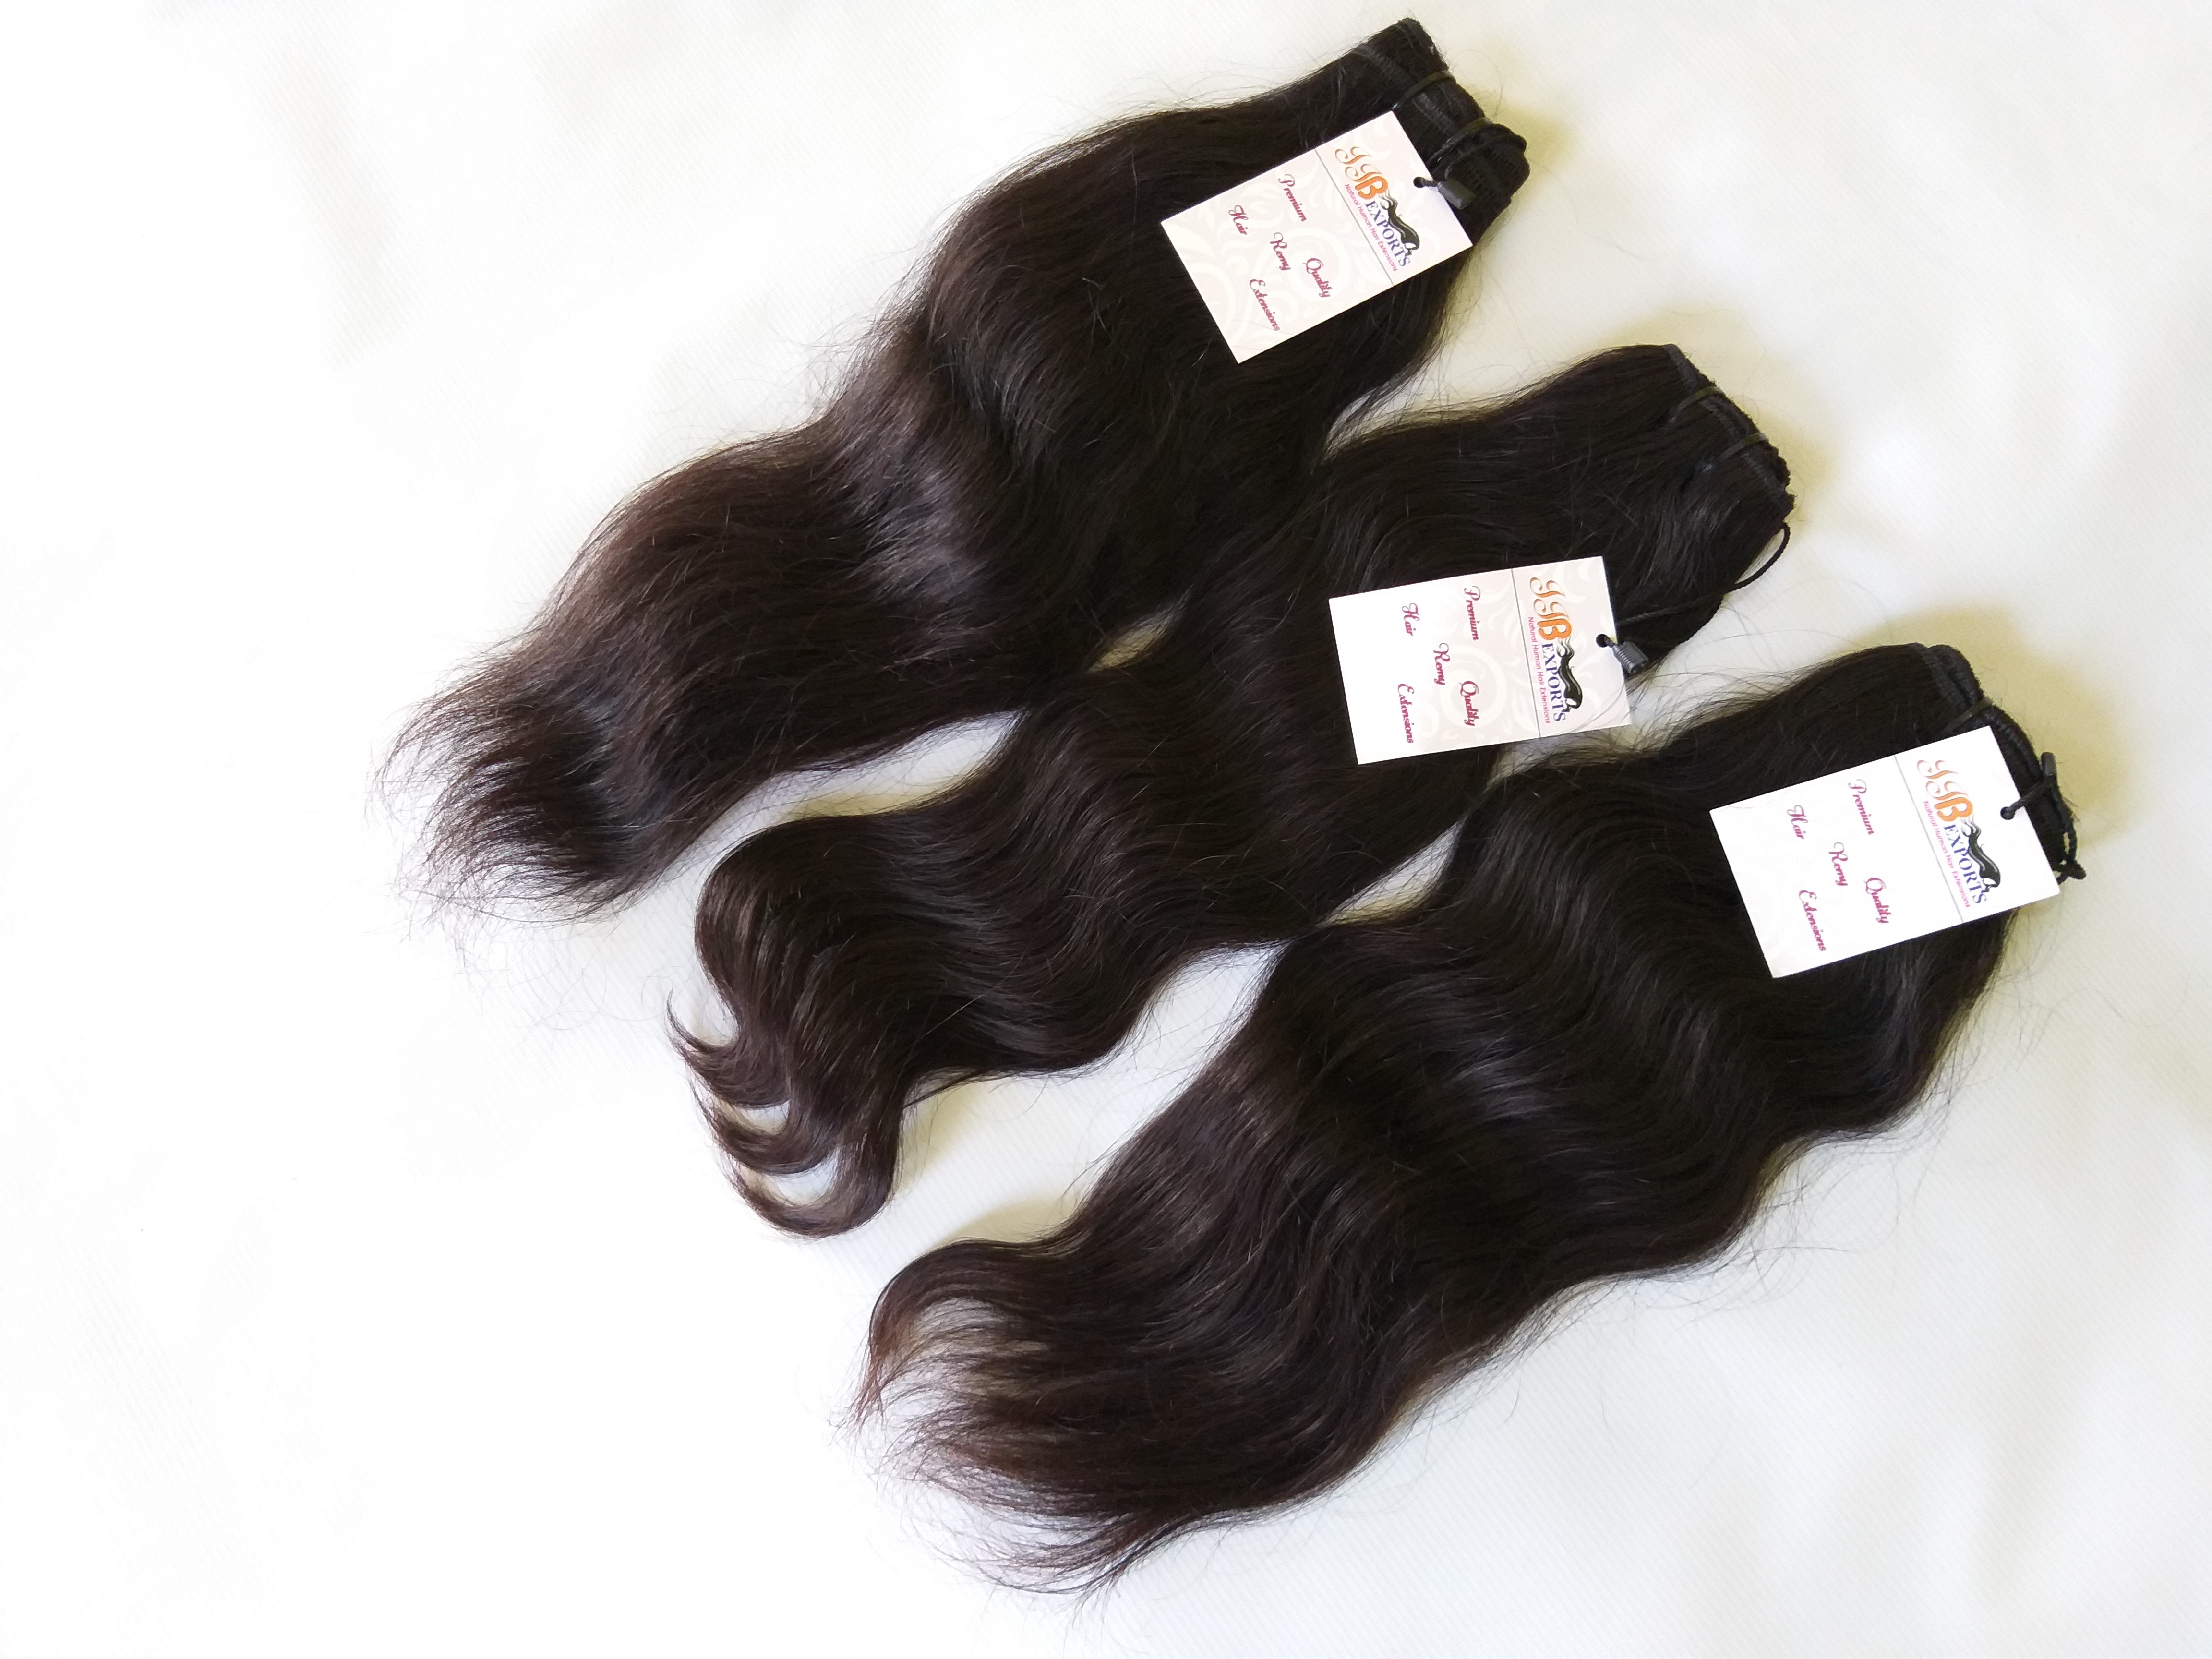 Natural Remy Indian Virgin Human Hair Straight Wavy Curly Bulk Hair Supplier Wholesale, Manufacturer & Exporter